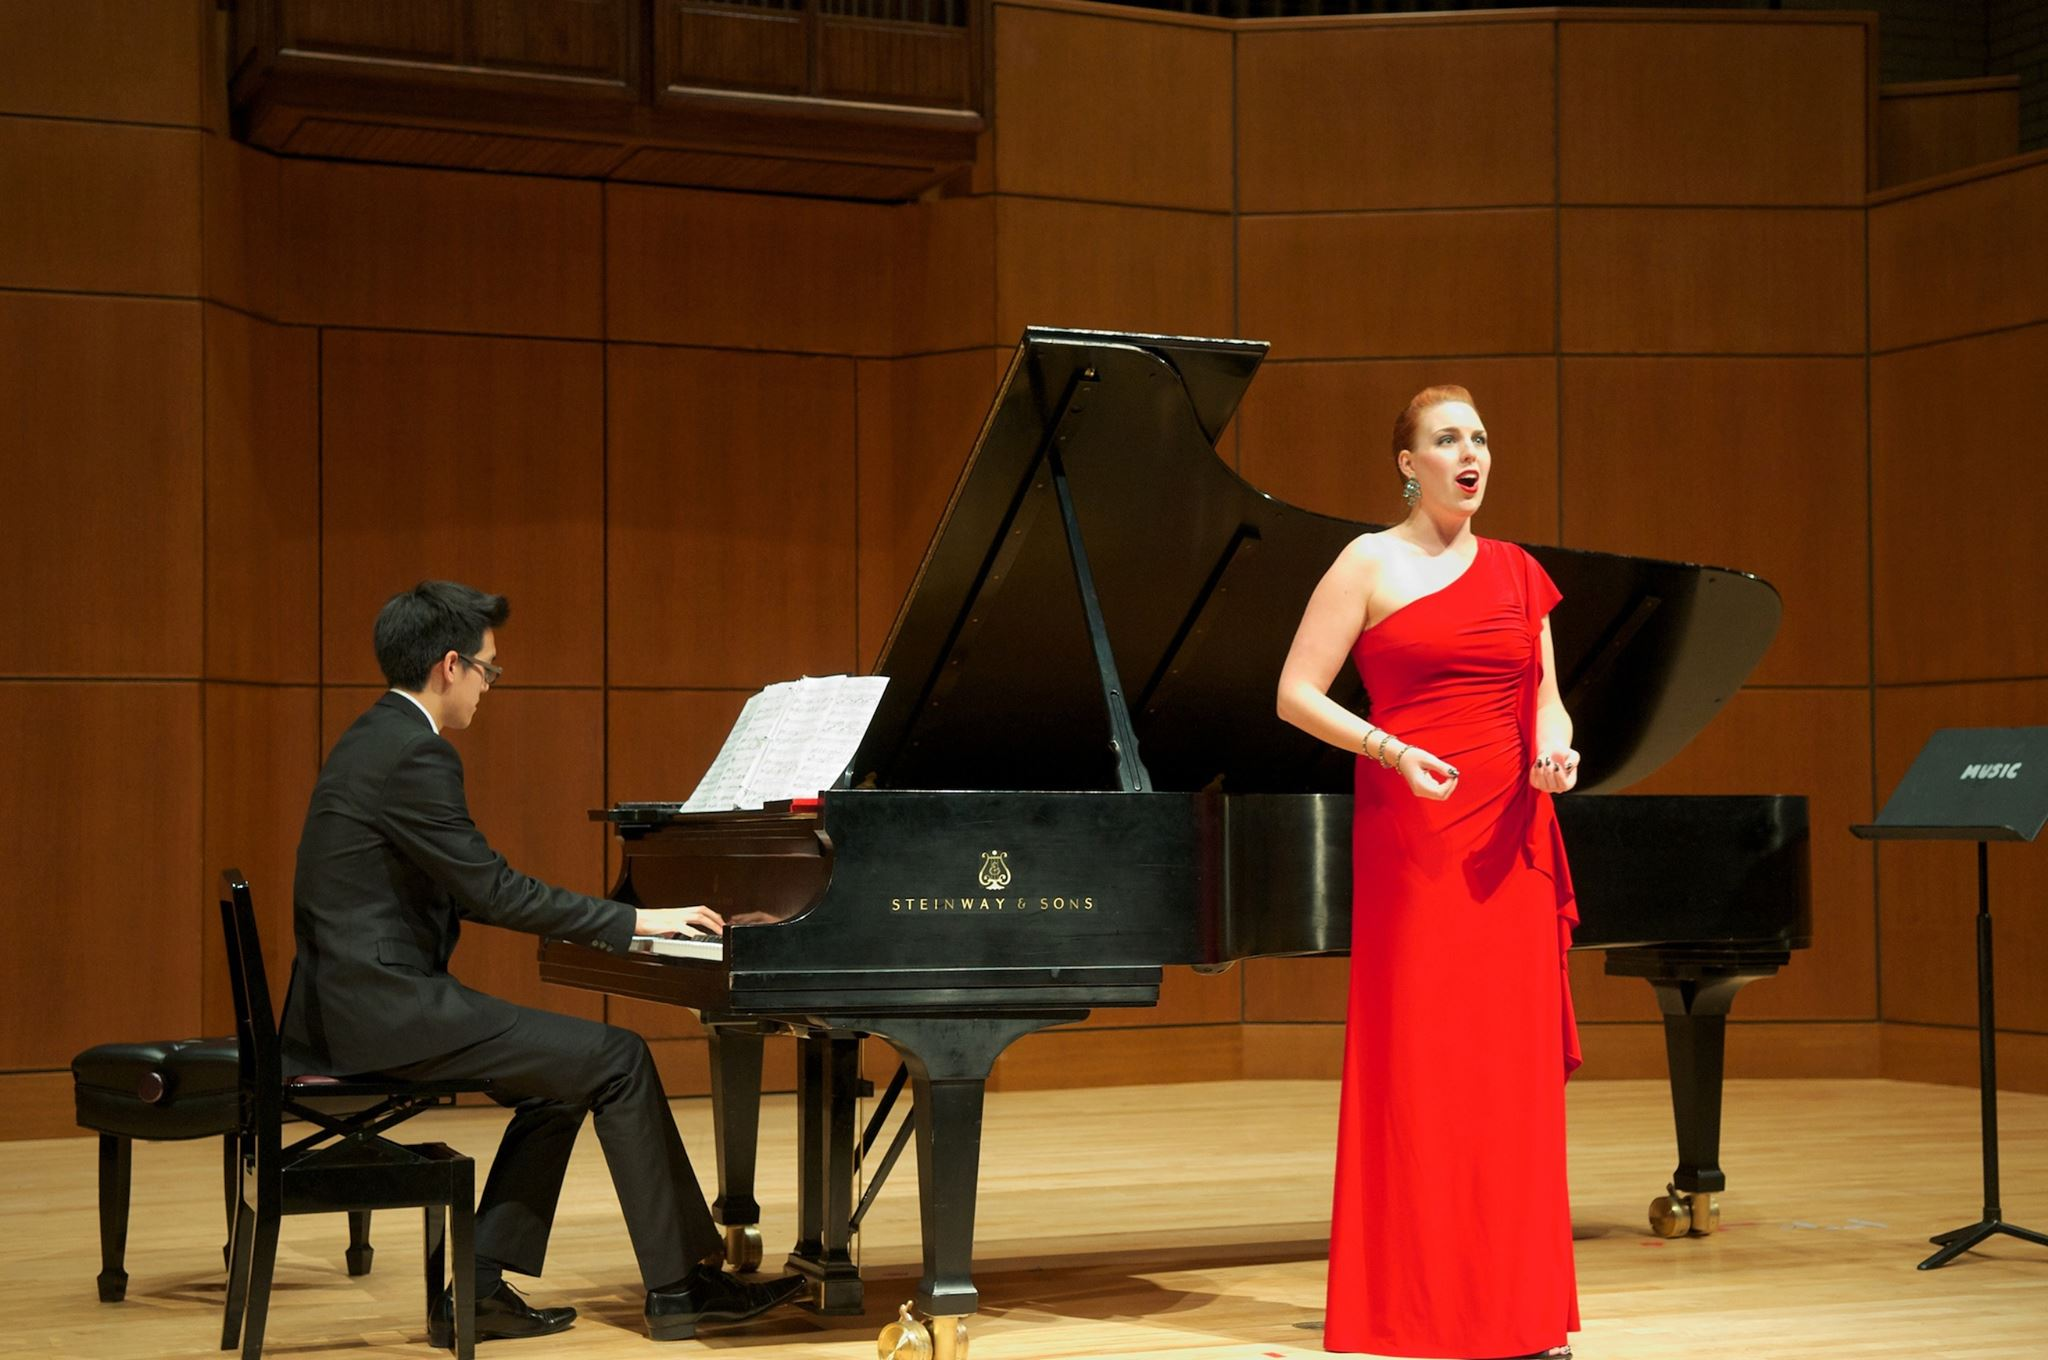 Page singing in a red gown